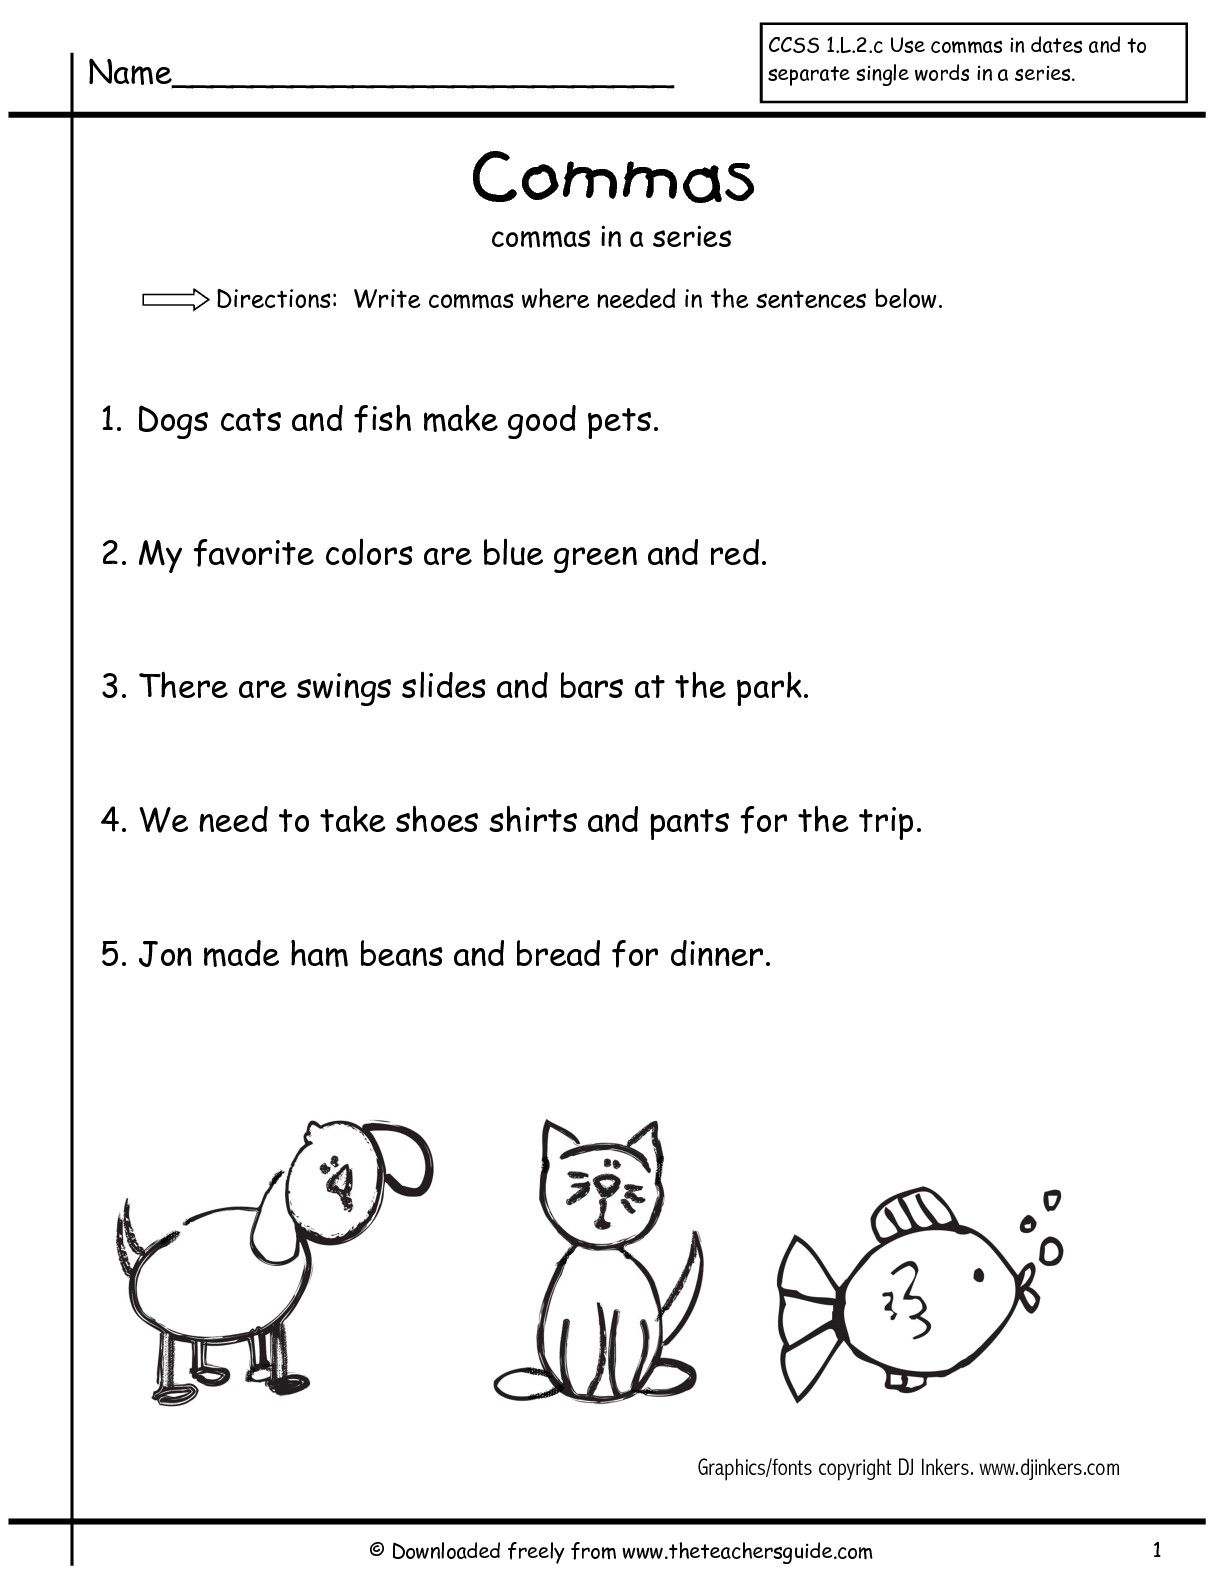 Worksheet First Grade Grammar practice capitalization leveon bell printables and grade 2 grammar worksheets commas in a series first free comma worksheets